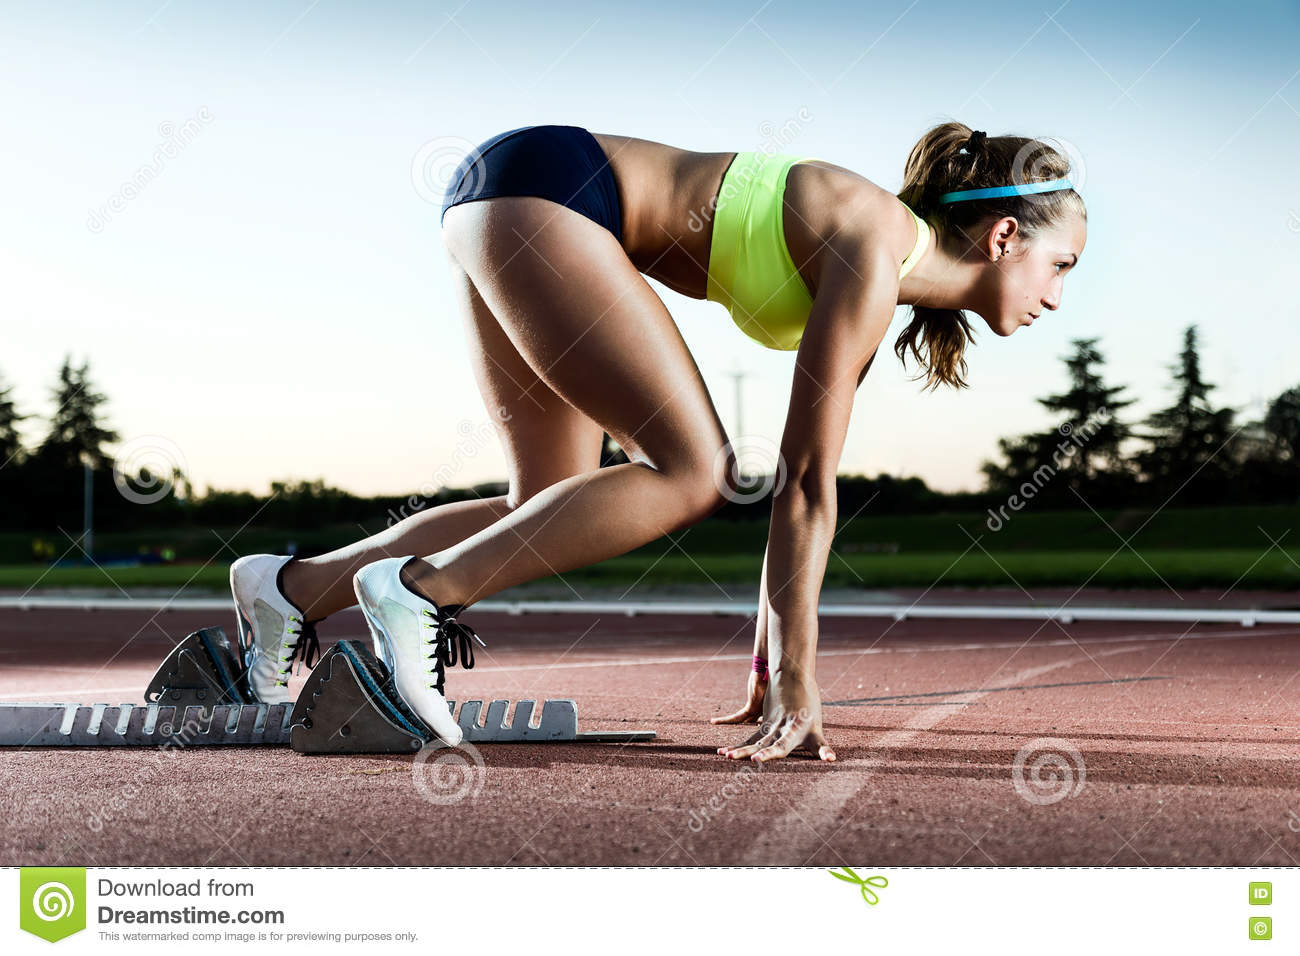 Download Young Female Athlete Launching Off The Start Line In A Race. Stock Image - Image of sport, exercising: 76368097